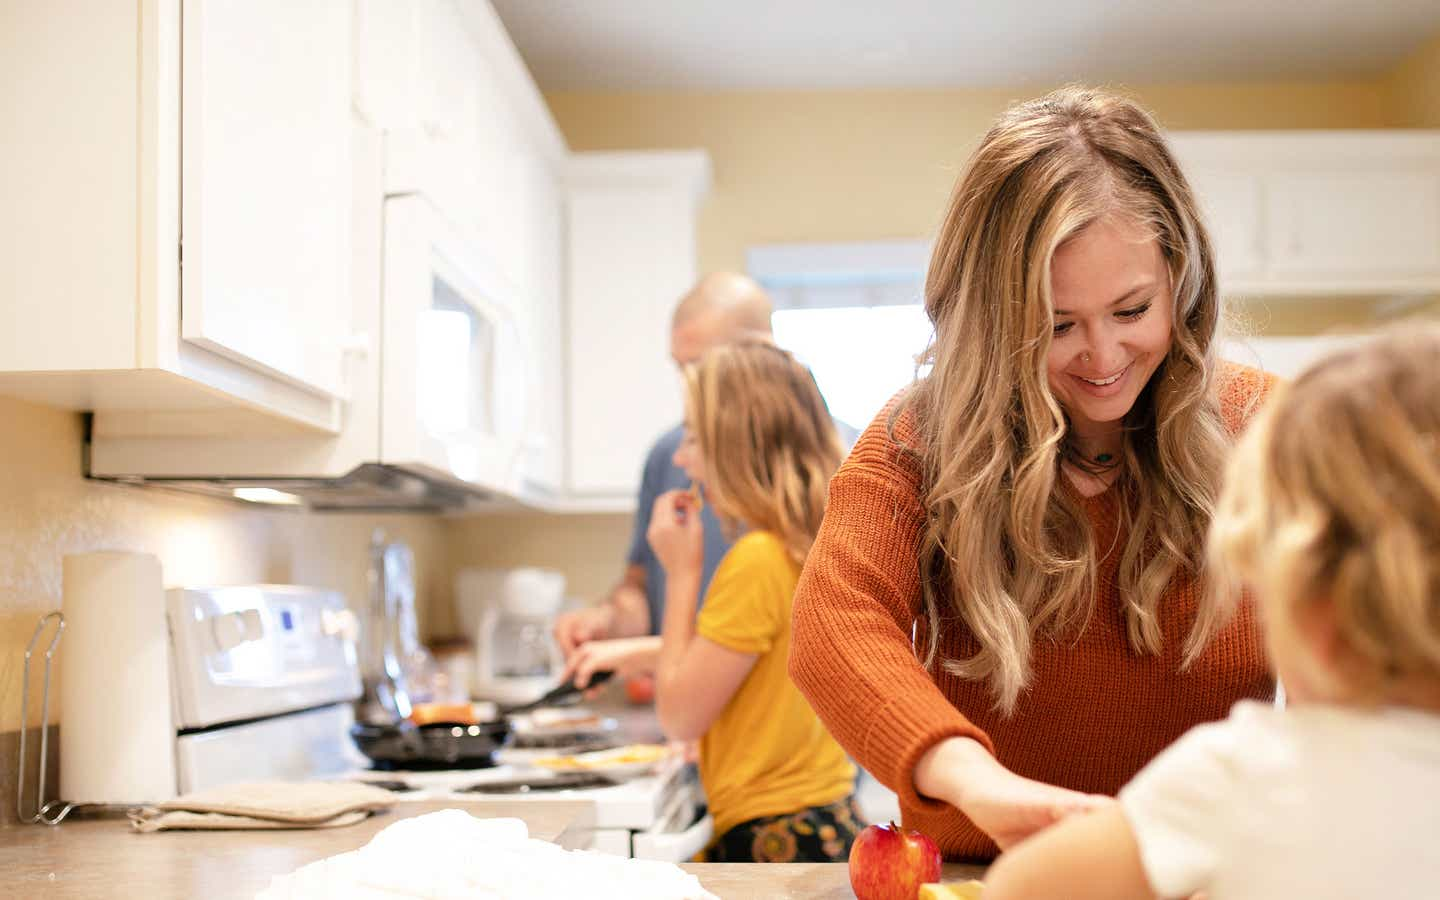 A woman in an orange sweater (front-right) helps serve a meal her husband and daughter (back-left) prepared in their Villa kitchen.